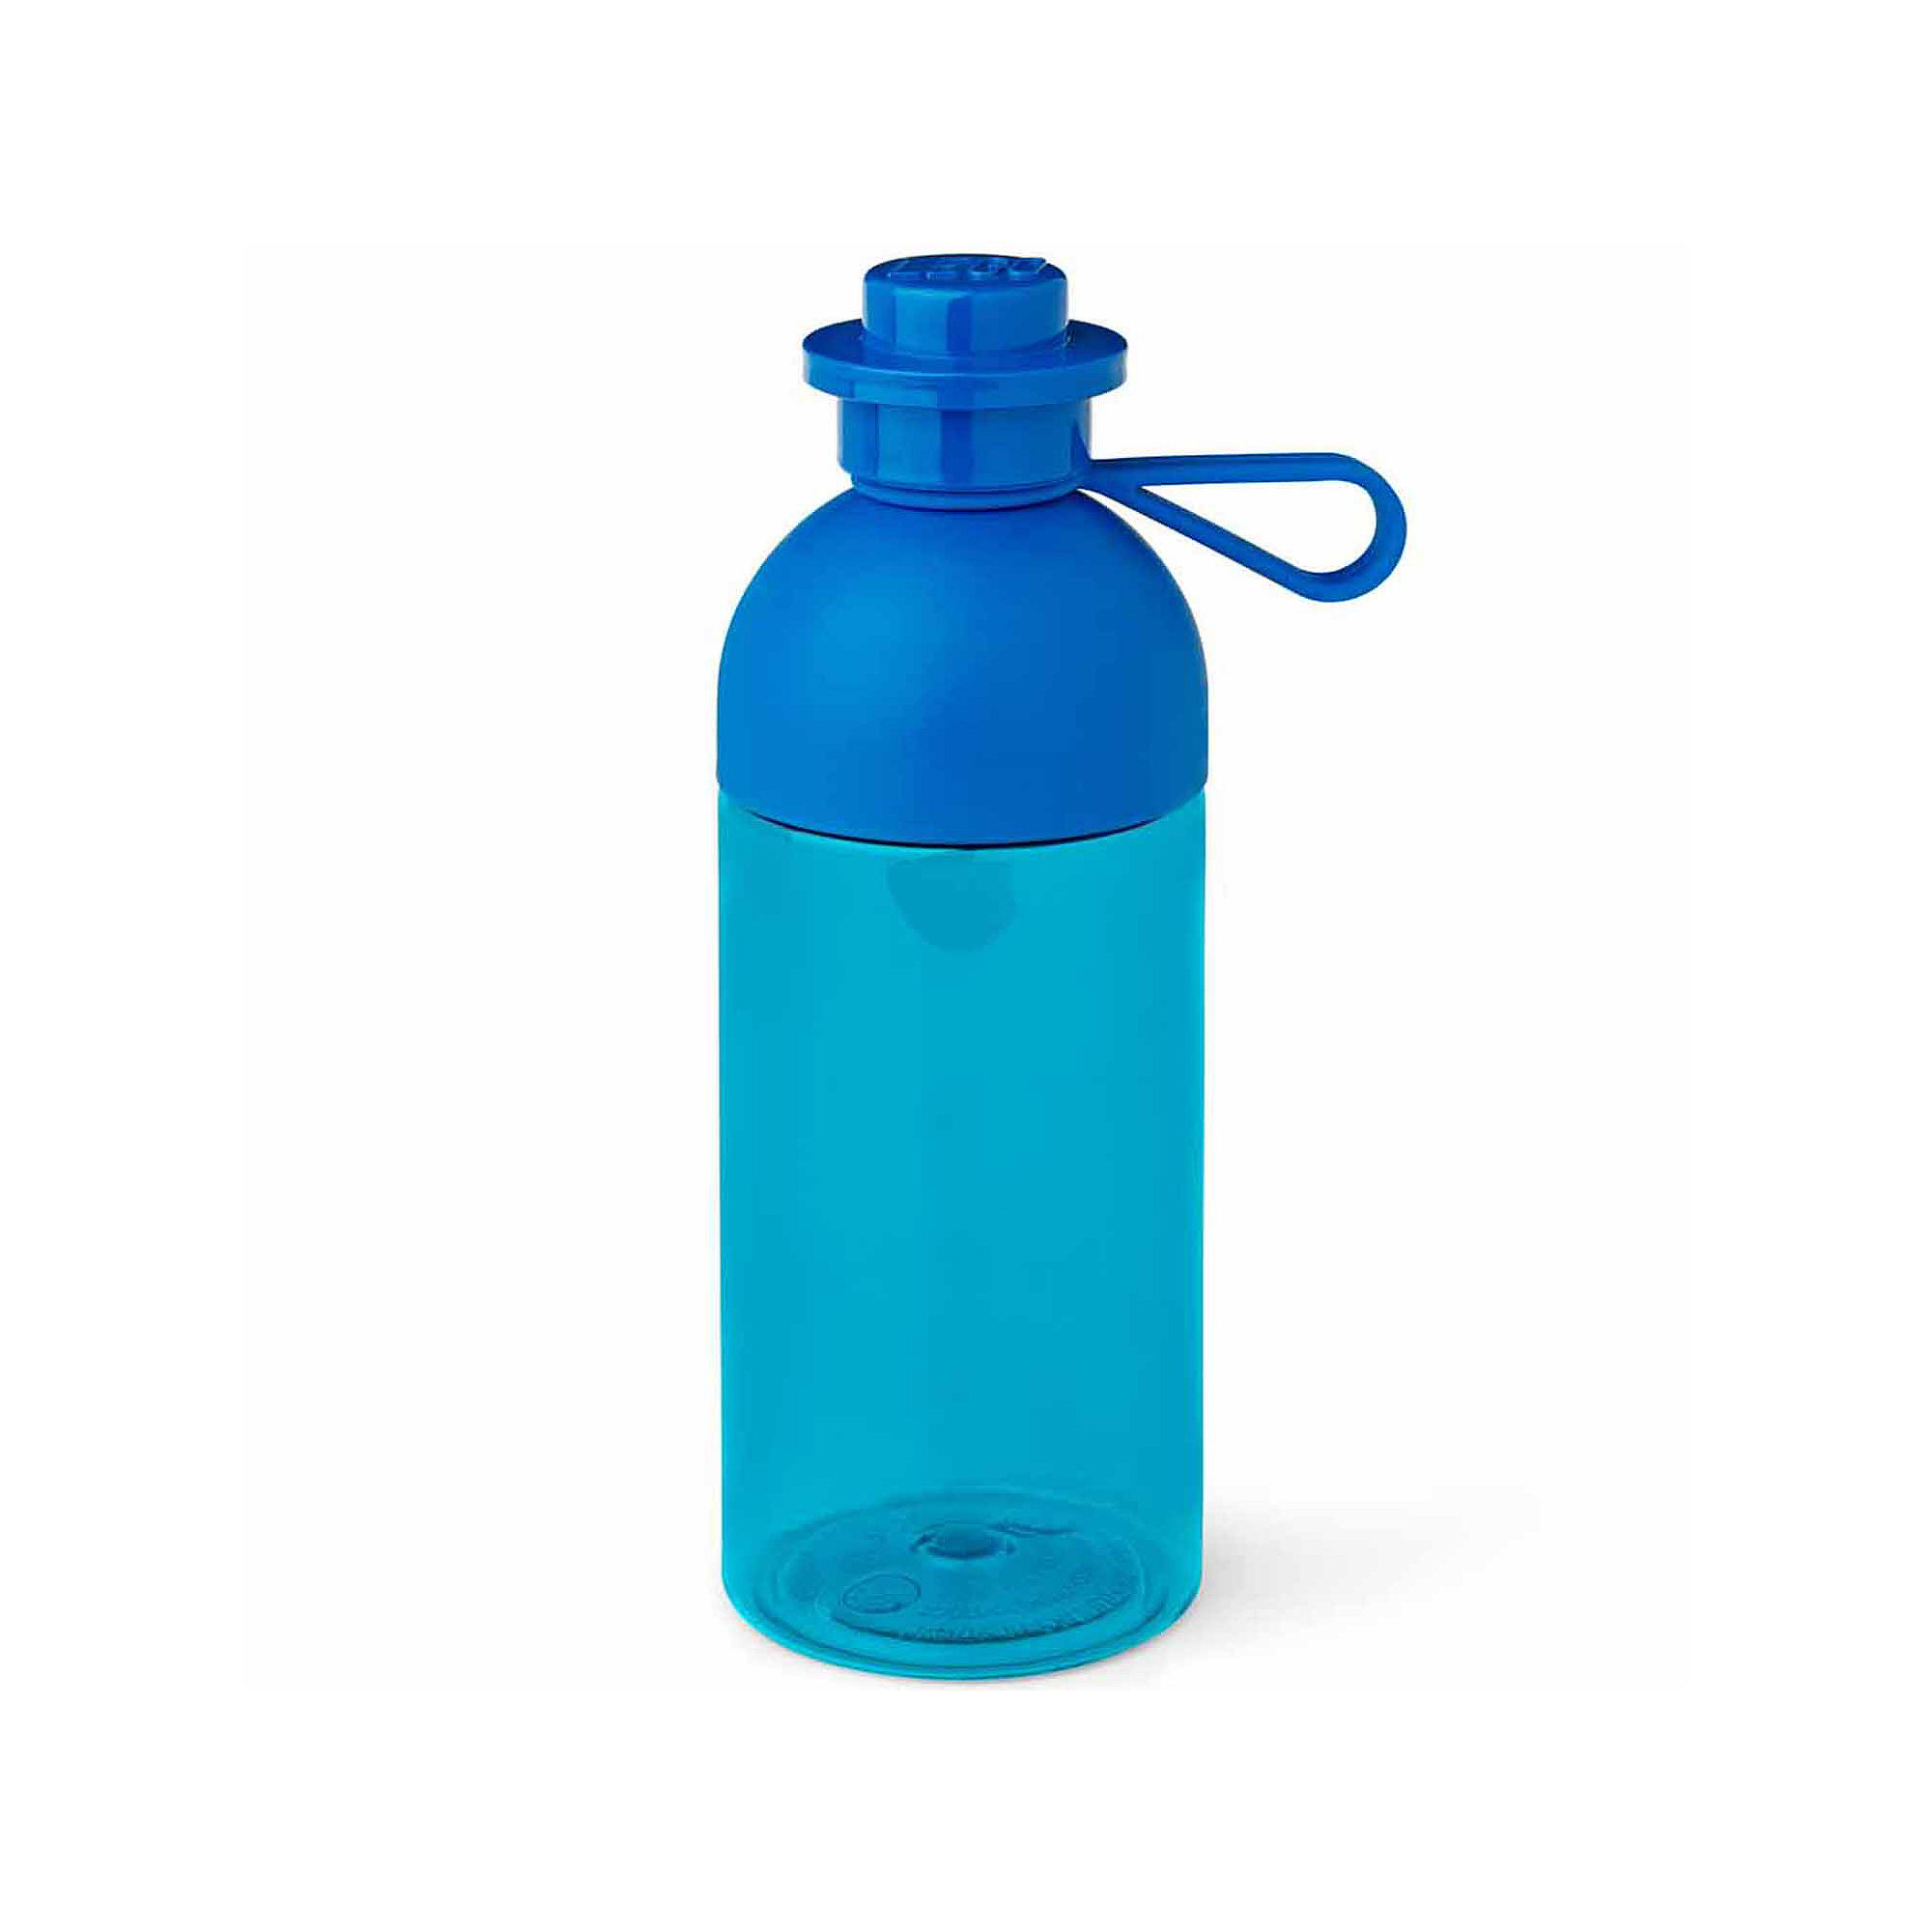 UPC 887988007456 product image for Lego Hydration Blue Water Bottle Drink Container Kids Mini Figure School 500ml | upcitemdb.com